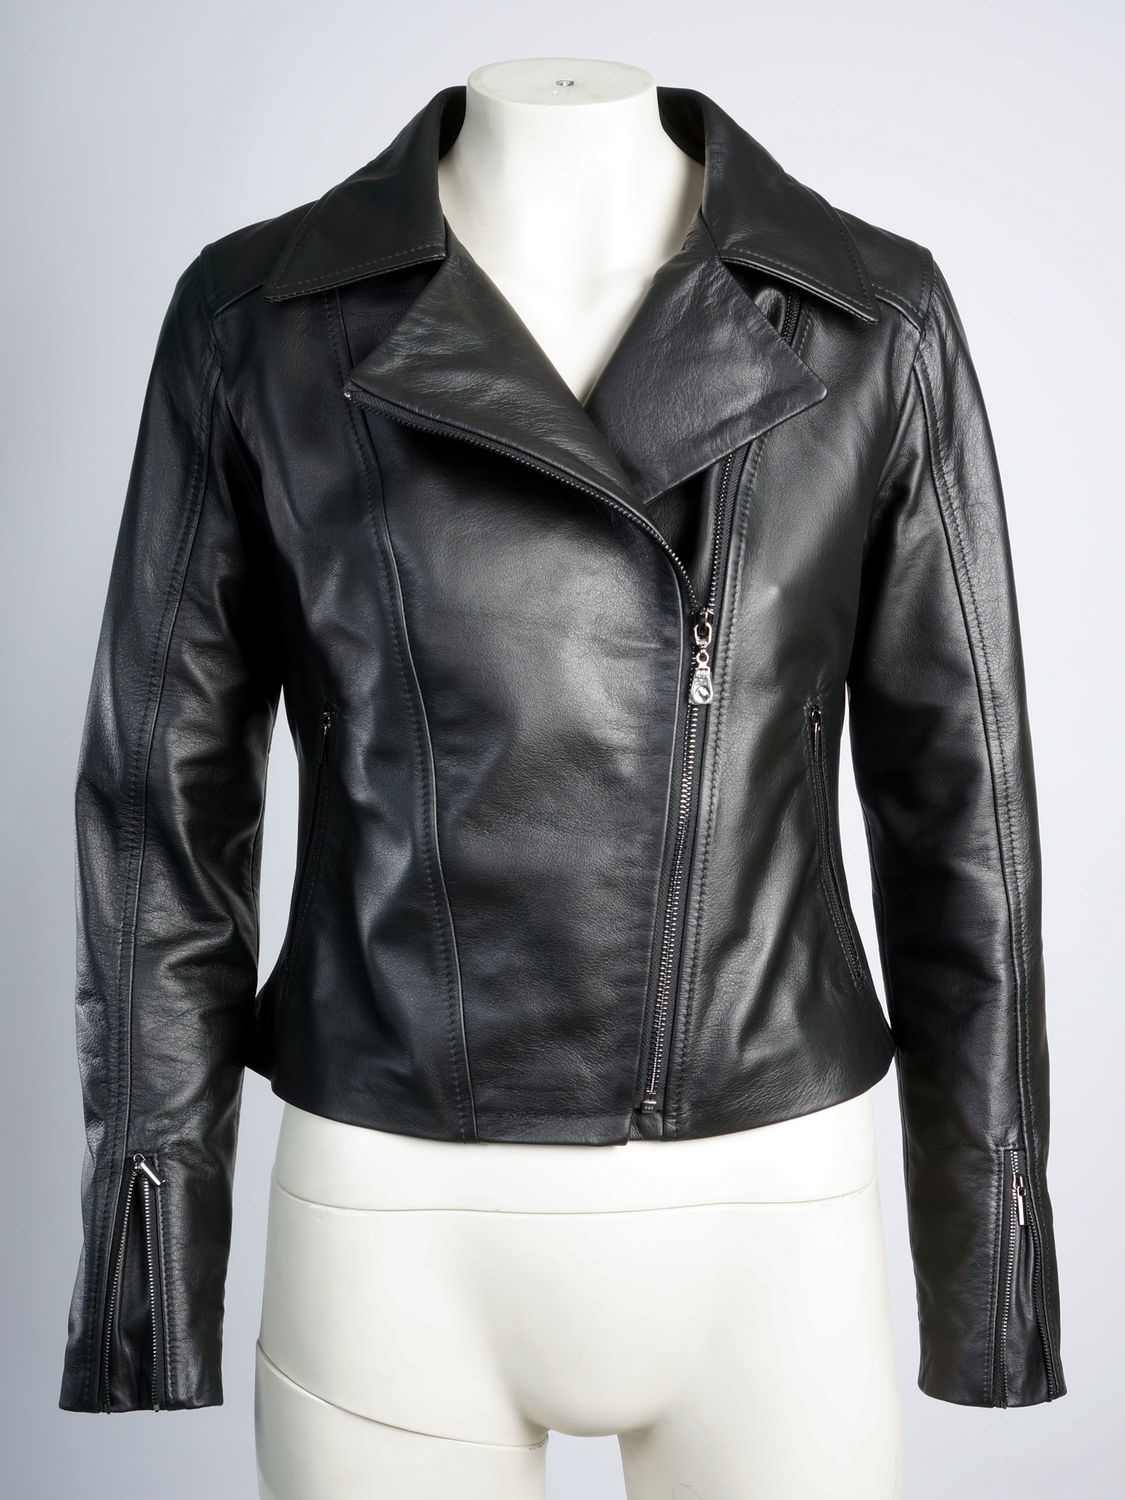 Leather jacket genuine leather black, Outerwear Jackets, Moscow,  Фото №1